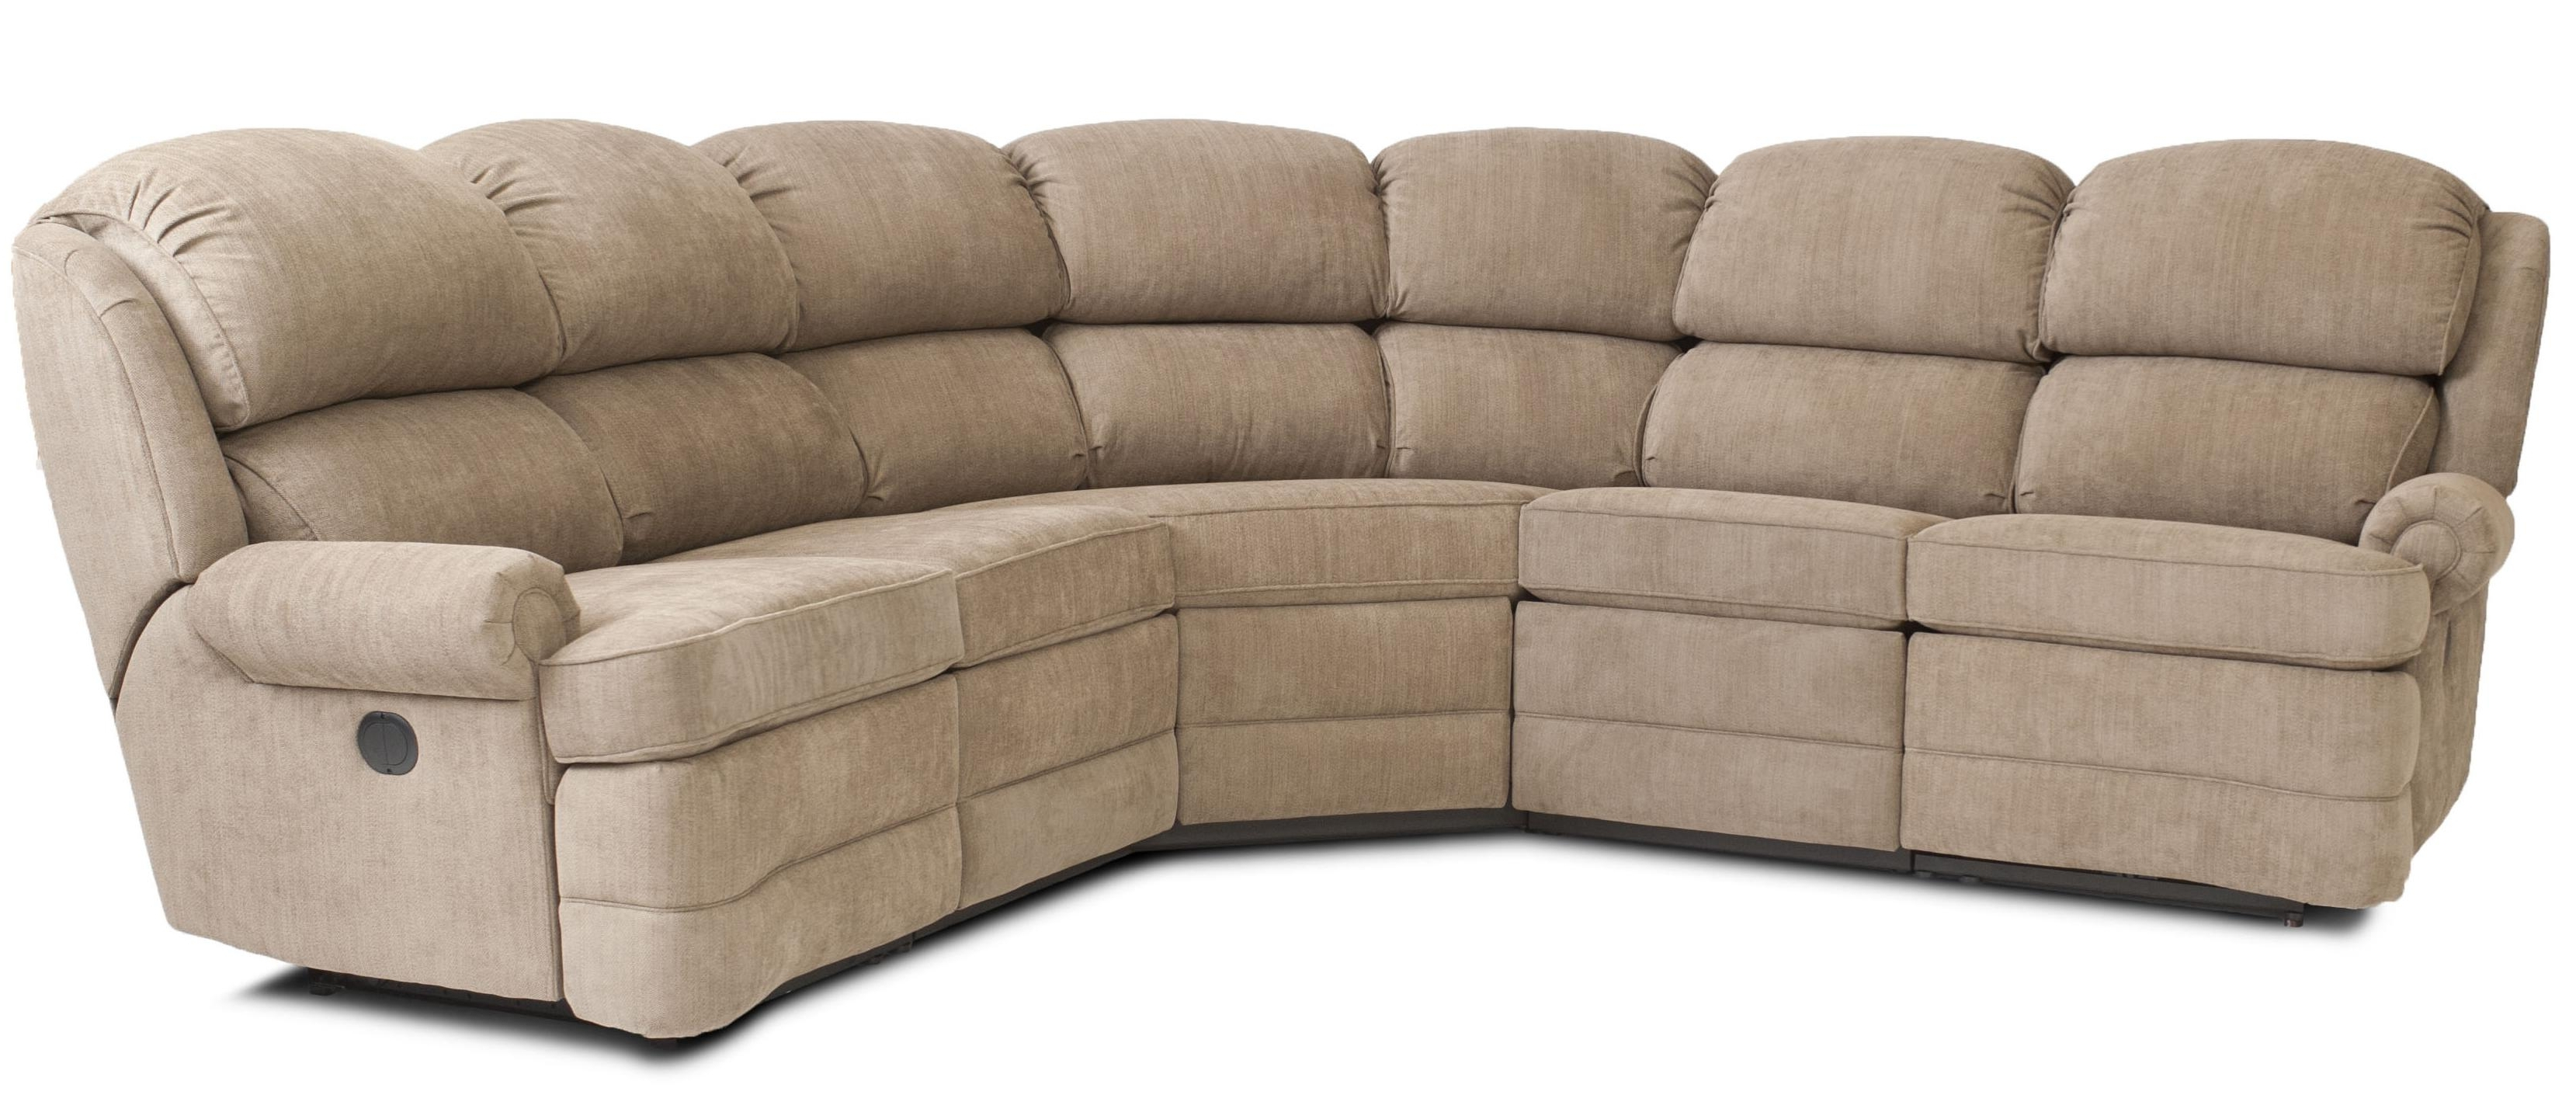 Preferred Beautiful Leather Sectional With Chaise And Recliner Gallery For 10X8 Sectional Sofas (View 10 of 20)